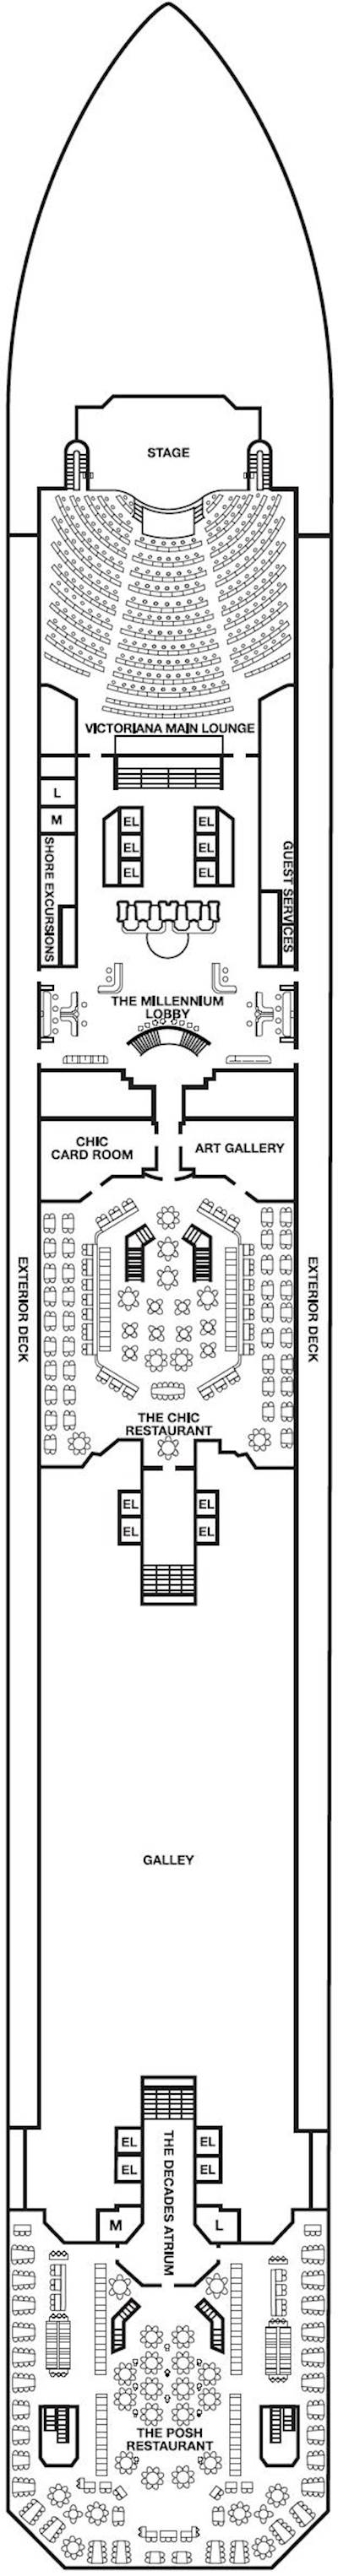 100 carnival victory floor plan carnival glory deck plans carnival victory floor plan carnival freedom cruise ship and top cruise deals jameslax Gallery